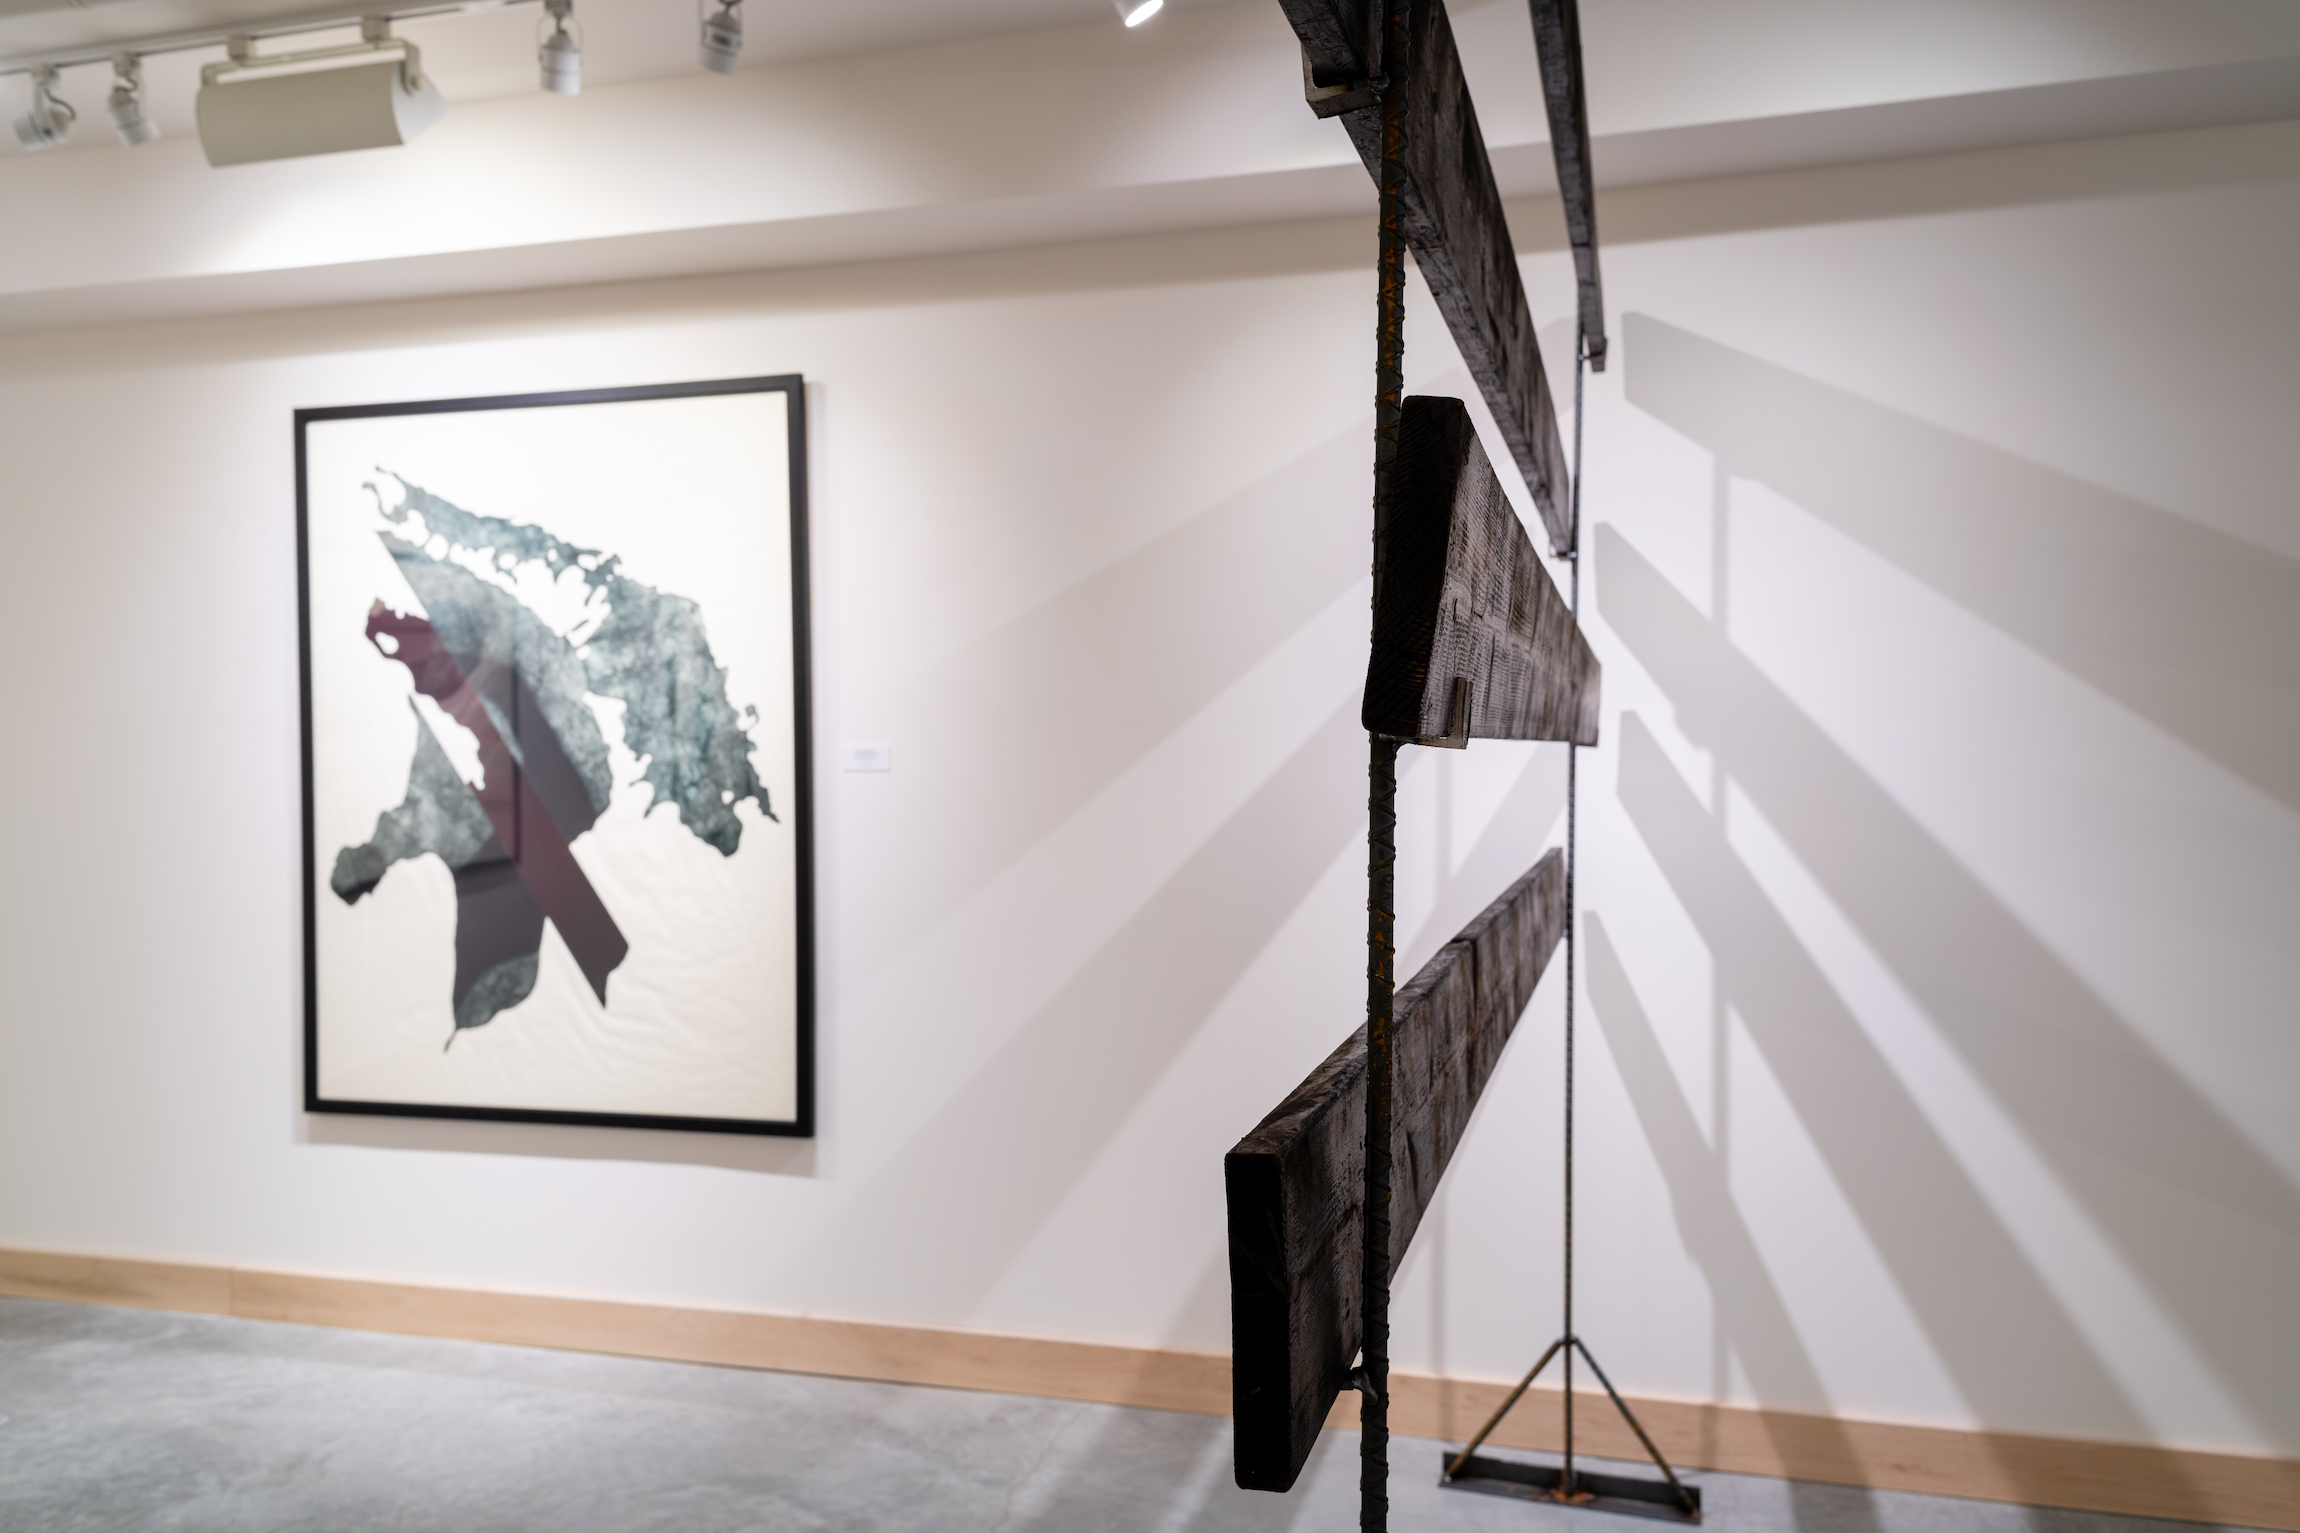 Installation view of Carissa Kalia Heinrichs' Master of Fine Arts exhibition As the Crow Flies at the Apex Gallery of Tandem Press, University of Wisconsin-Madison. Photography by Kyle Herrera.